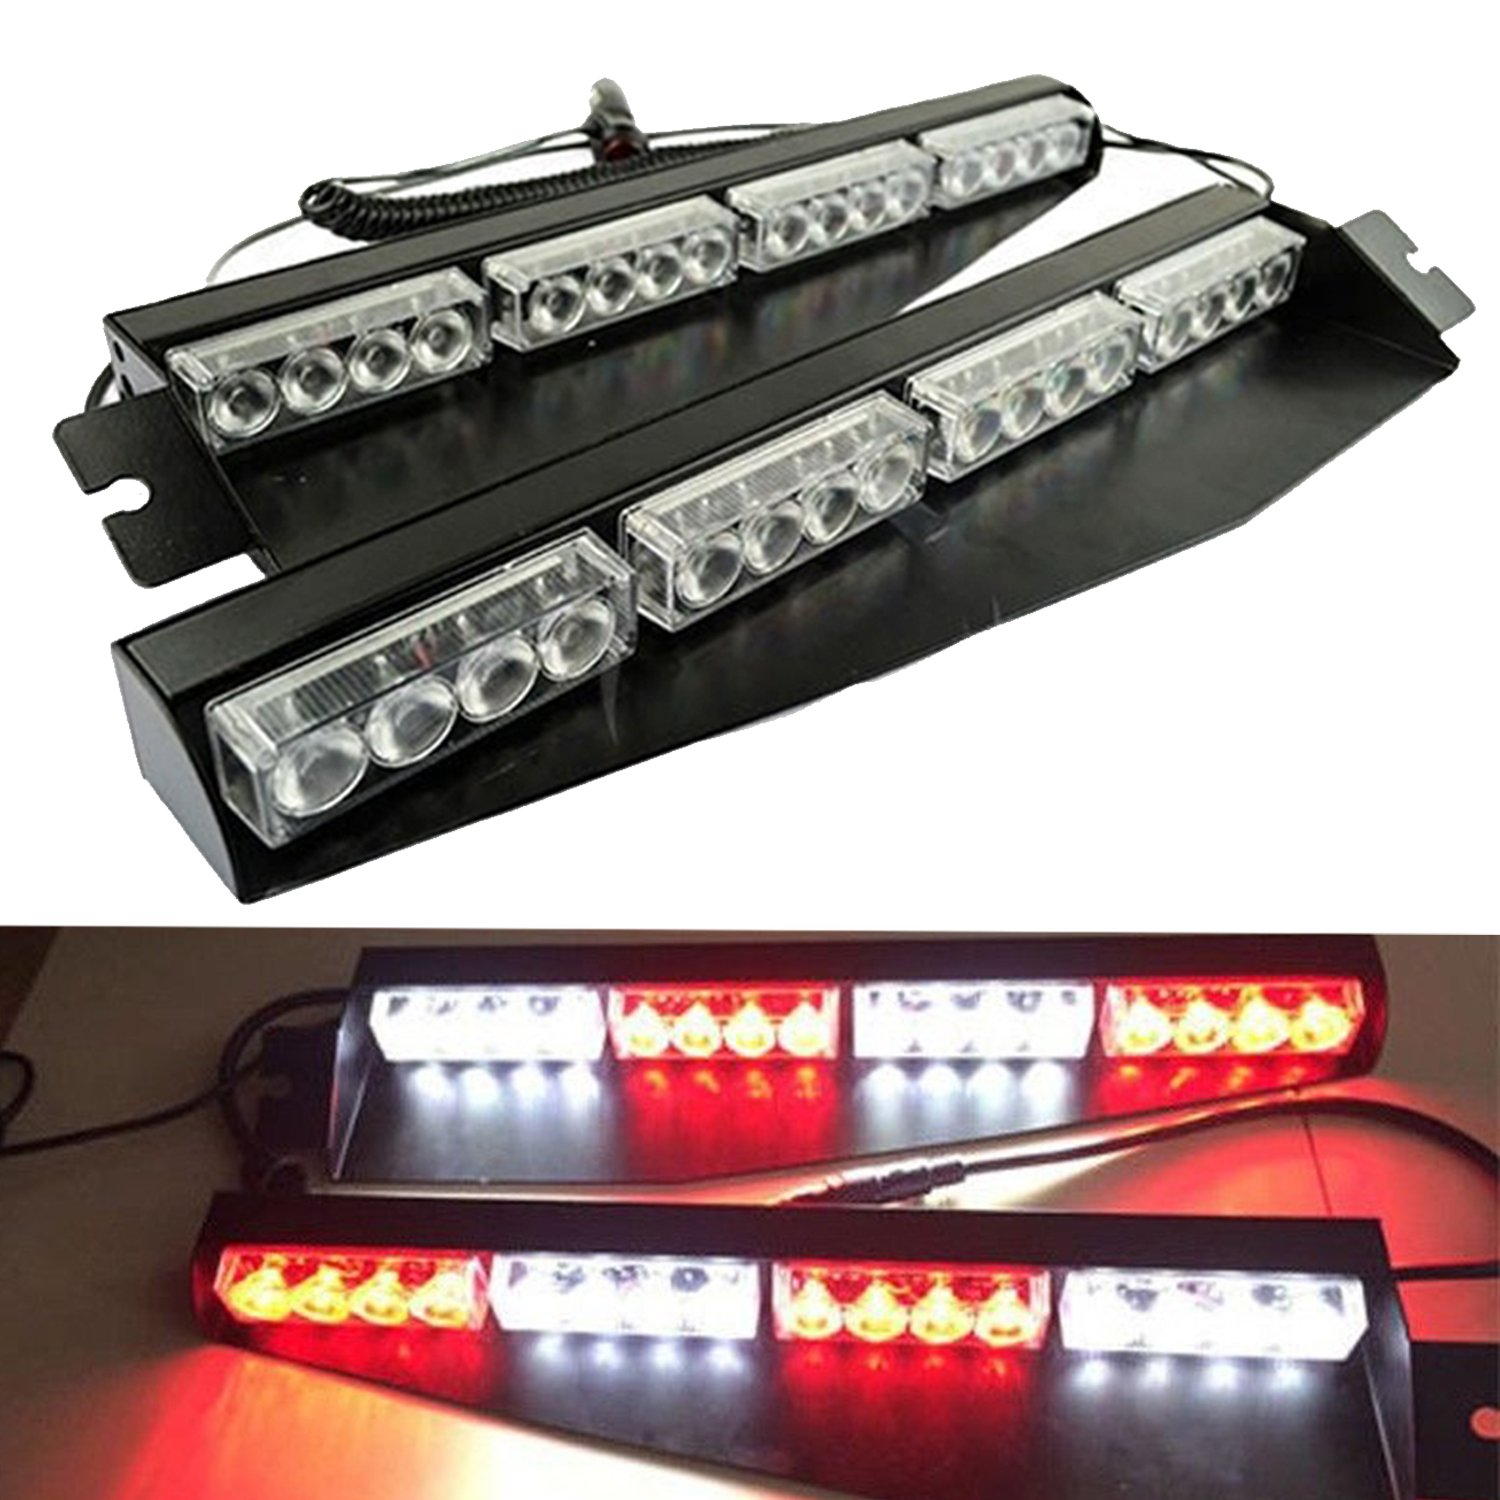 32LED 32W LED Lightbar Visor Light Windshield Emergency Hazard Warning Strobe Beacon Split Mount Deck Dash Lamp (Red&White)